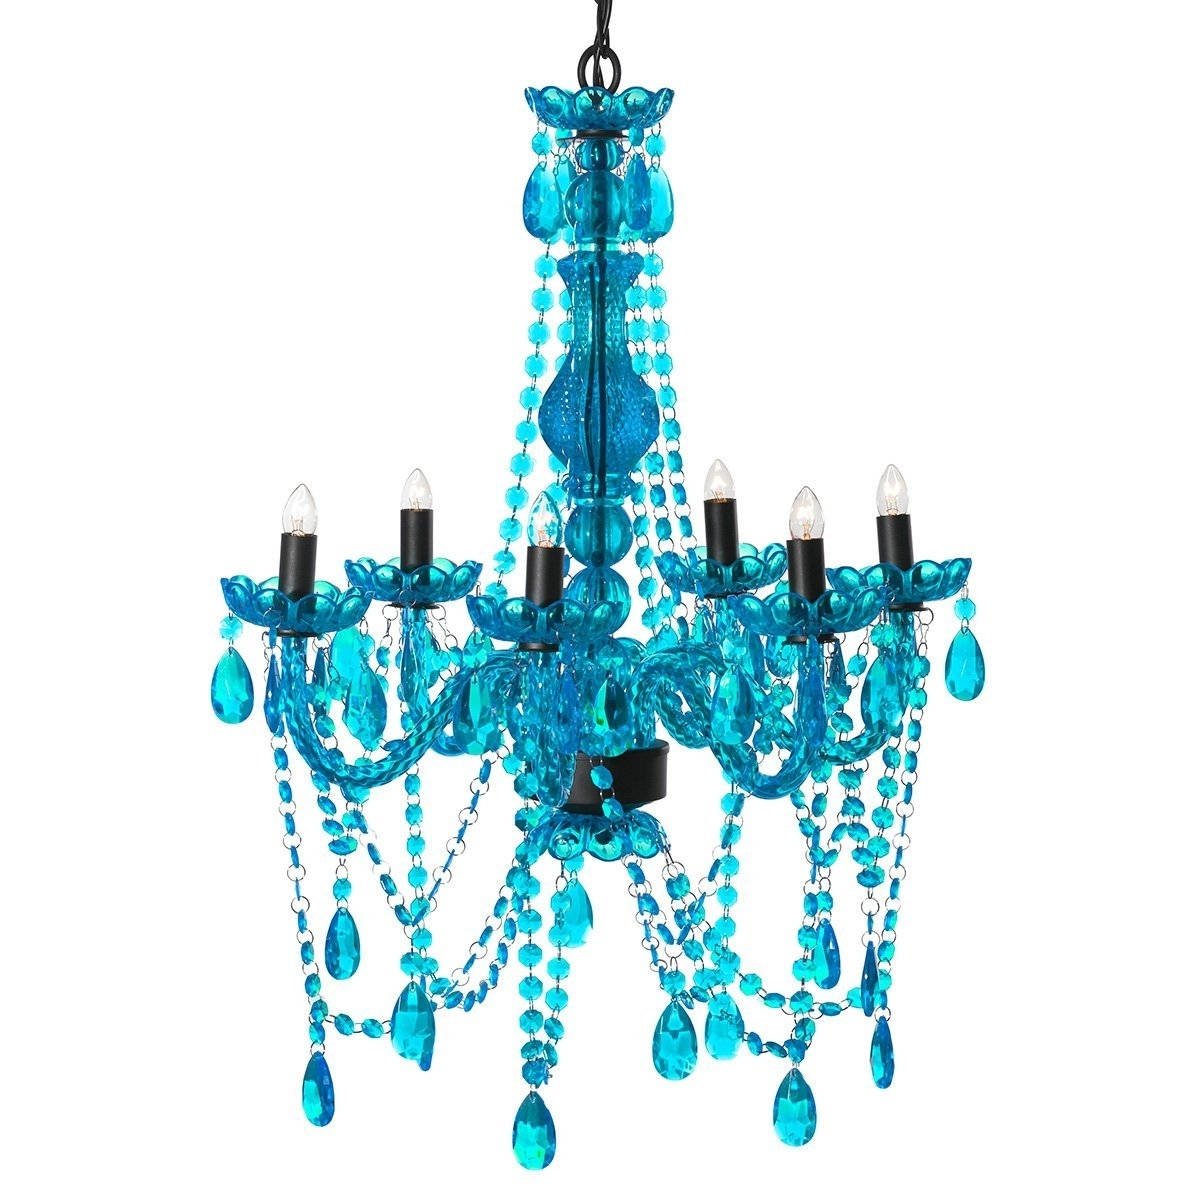 Amazon: 3C4G Chandelier, Turquoise: Home & Kitchen Within Most Recent Turquoise Mini Chandeliers (View 4 of 15)